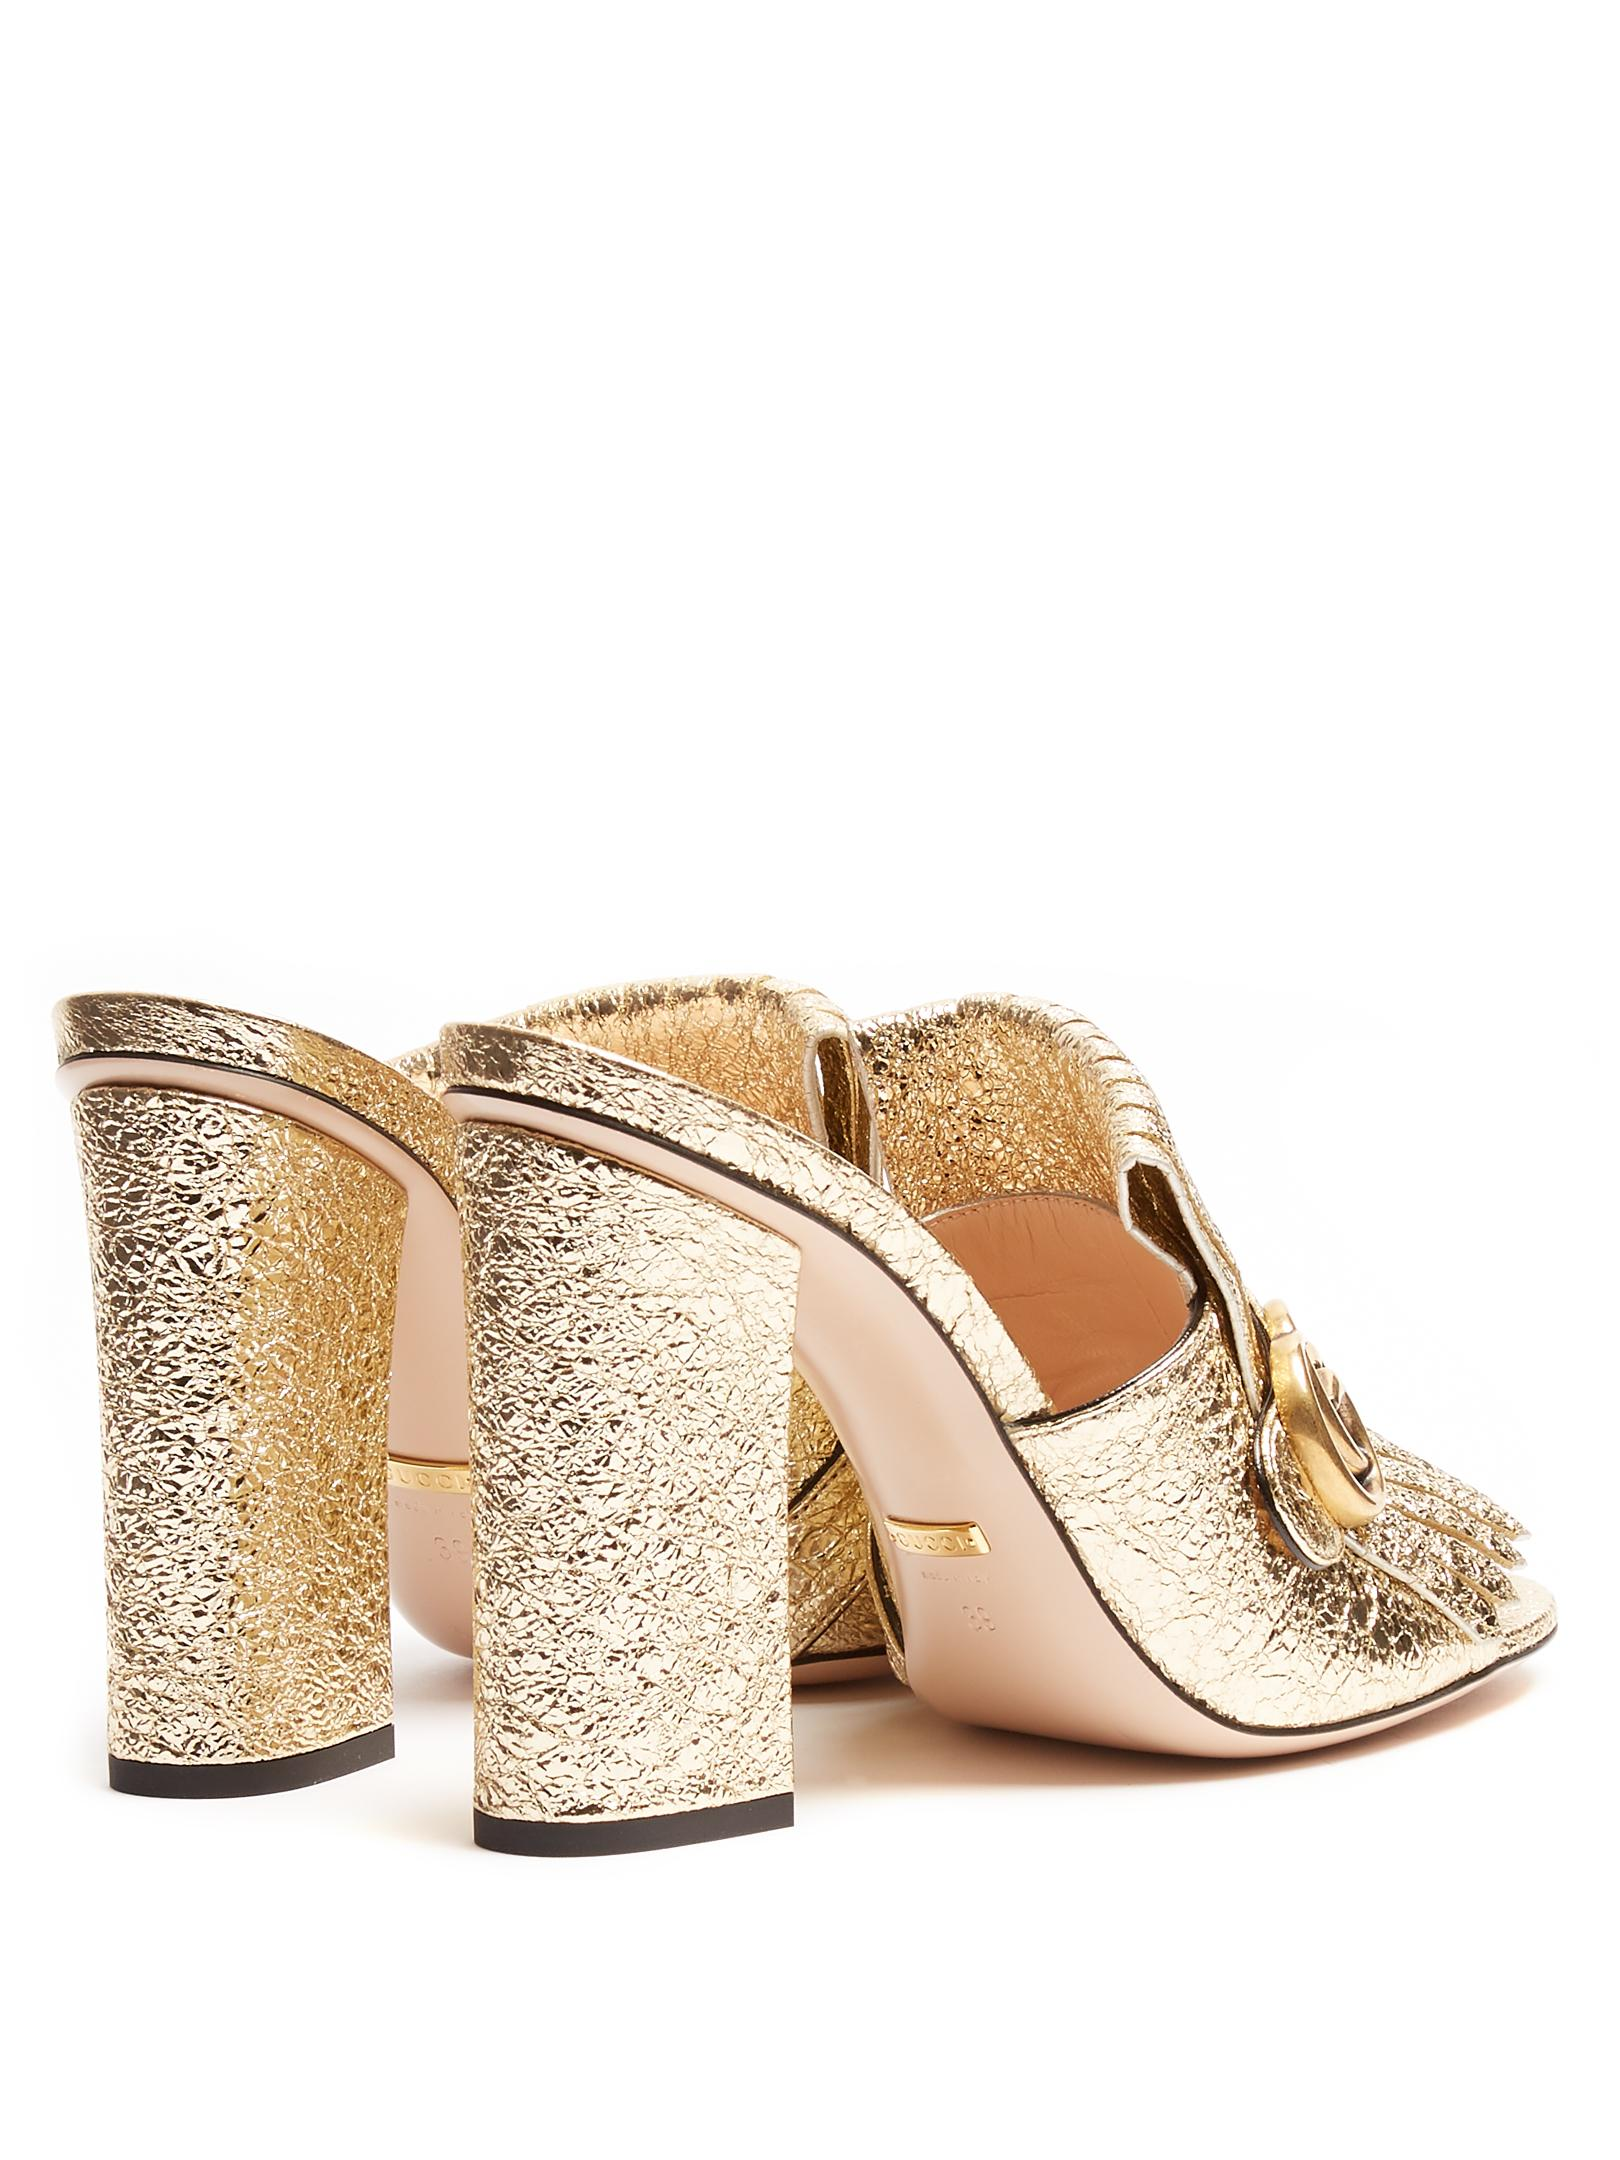 Lyst Gucci Marmont Fringed Leather Sandals In Metallic